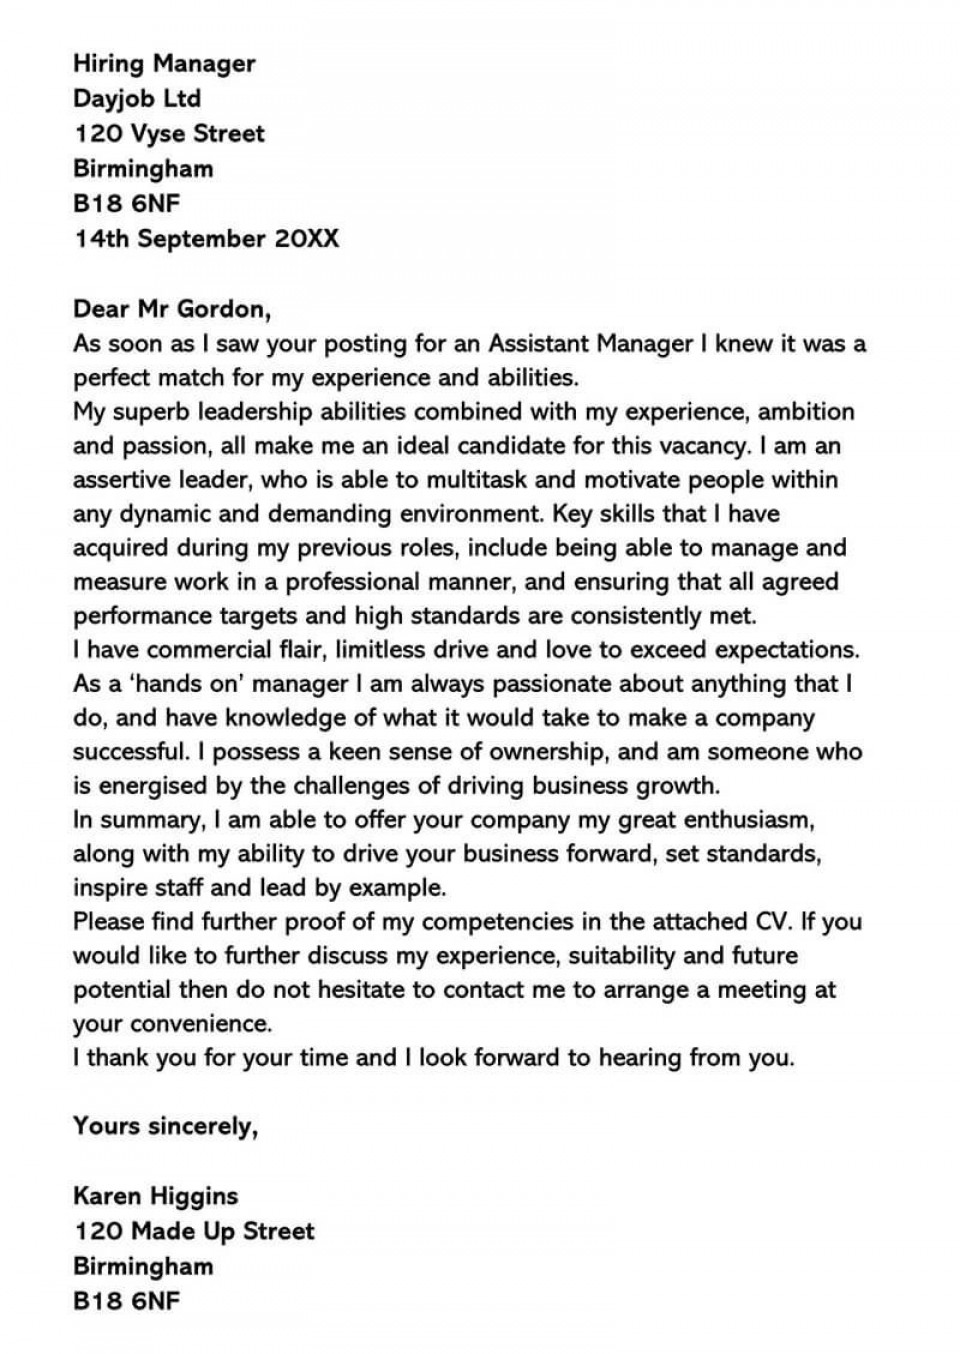 002 Wondrou General Manager Cover Letter Template Inspiration  Hotel960